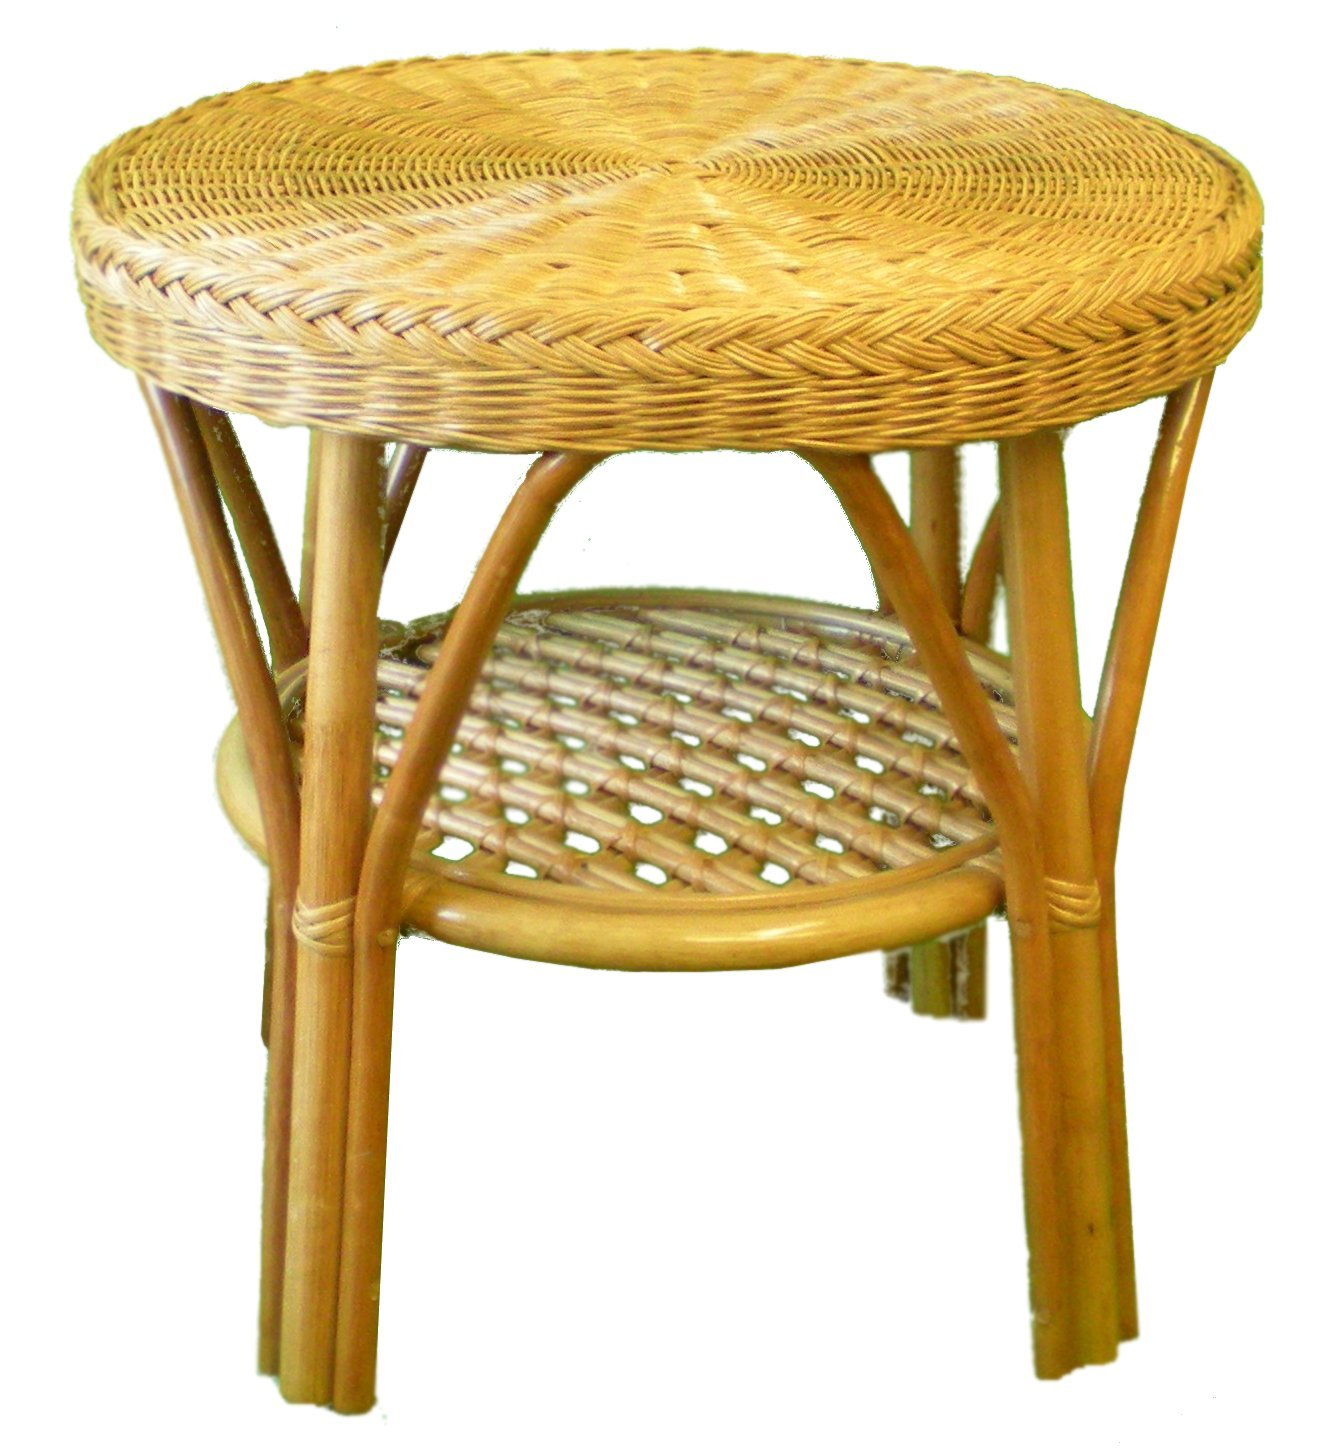 W366 Wicker Table